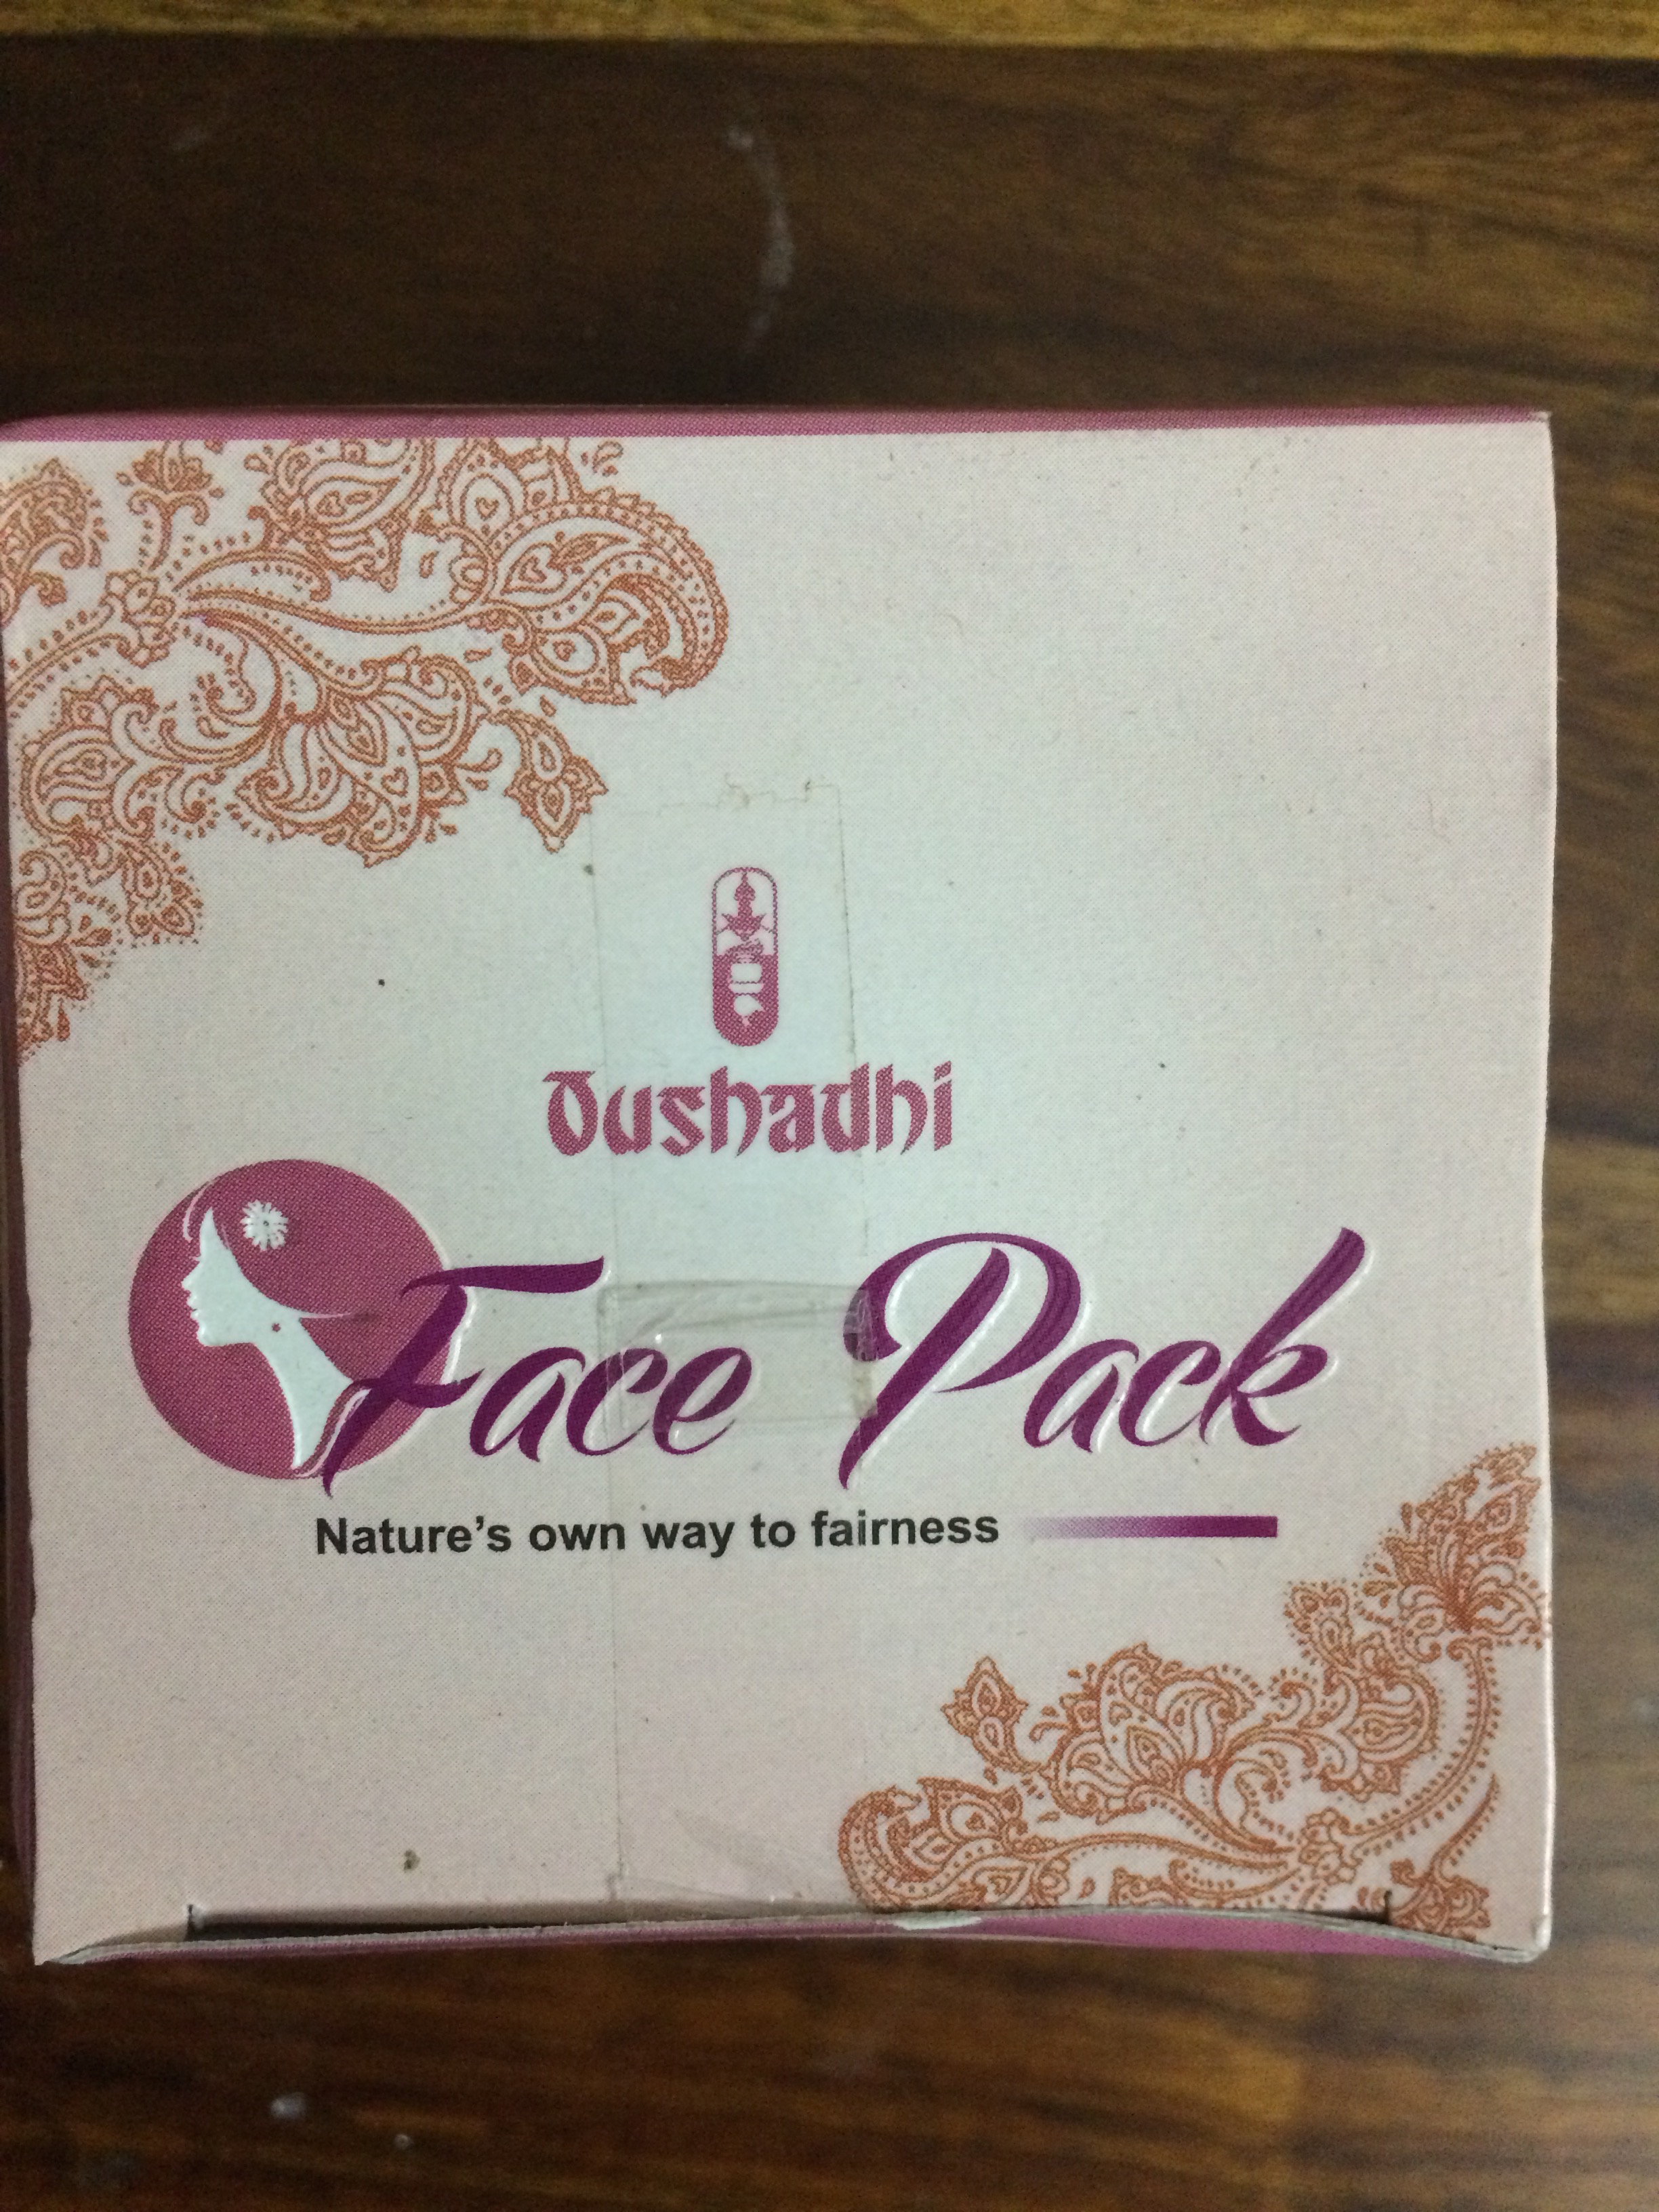 Oushadhi Face Pack